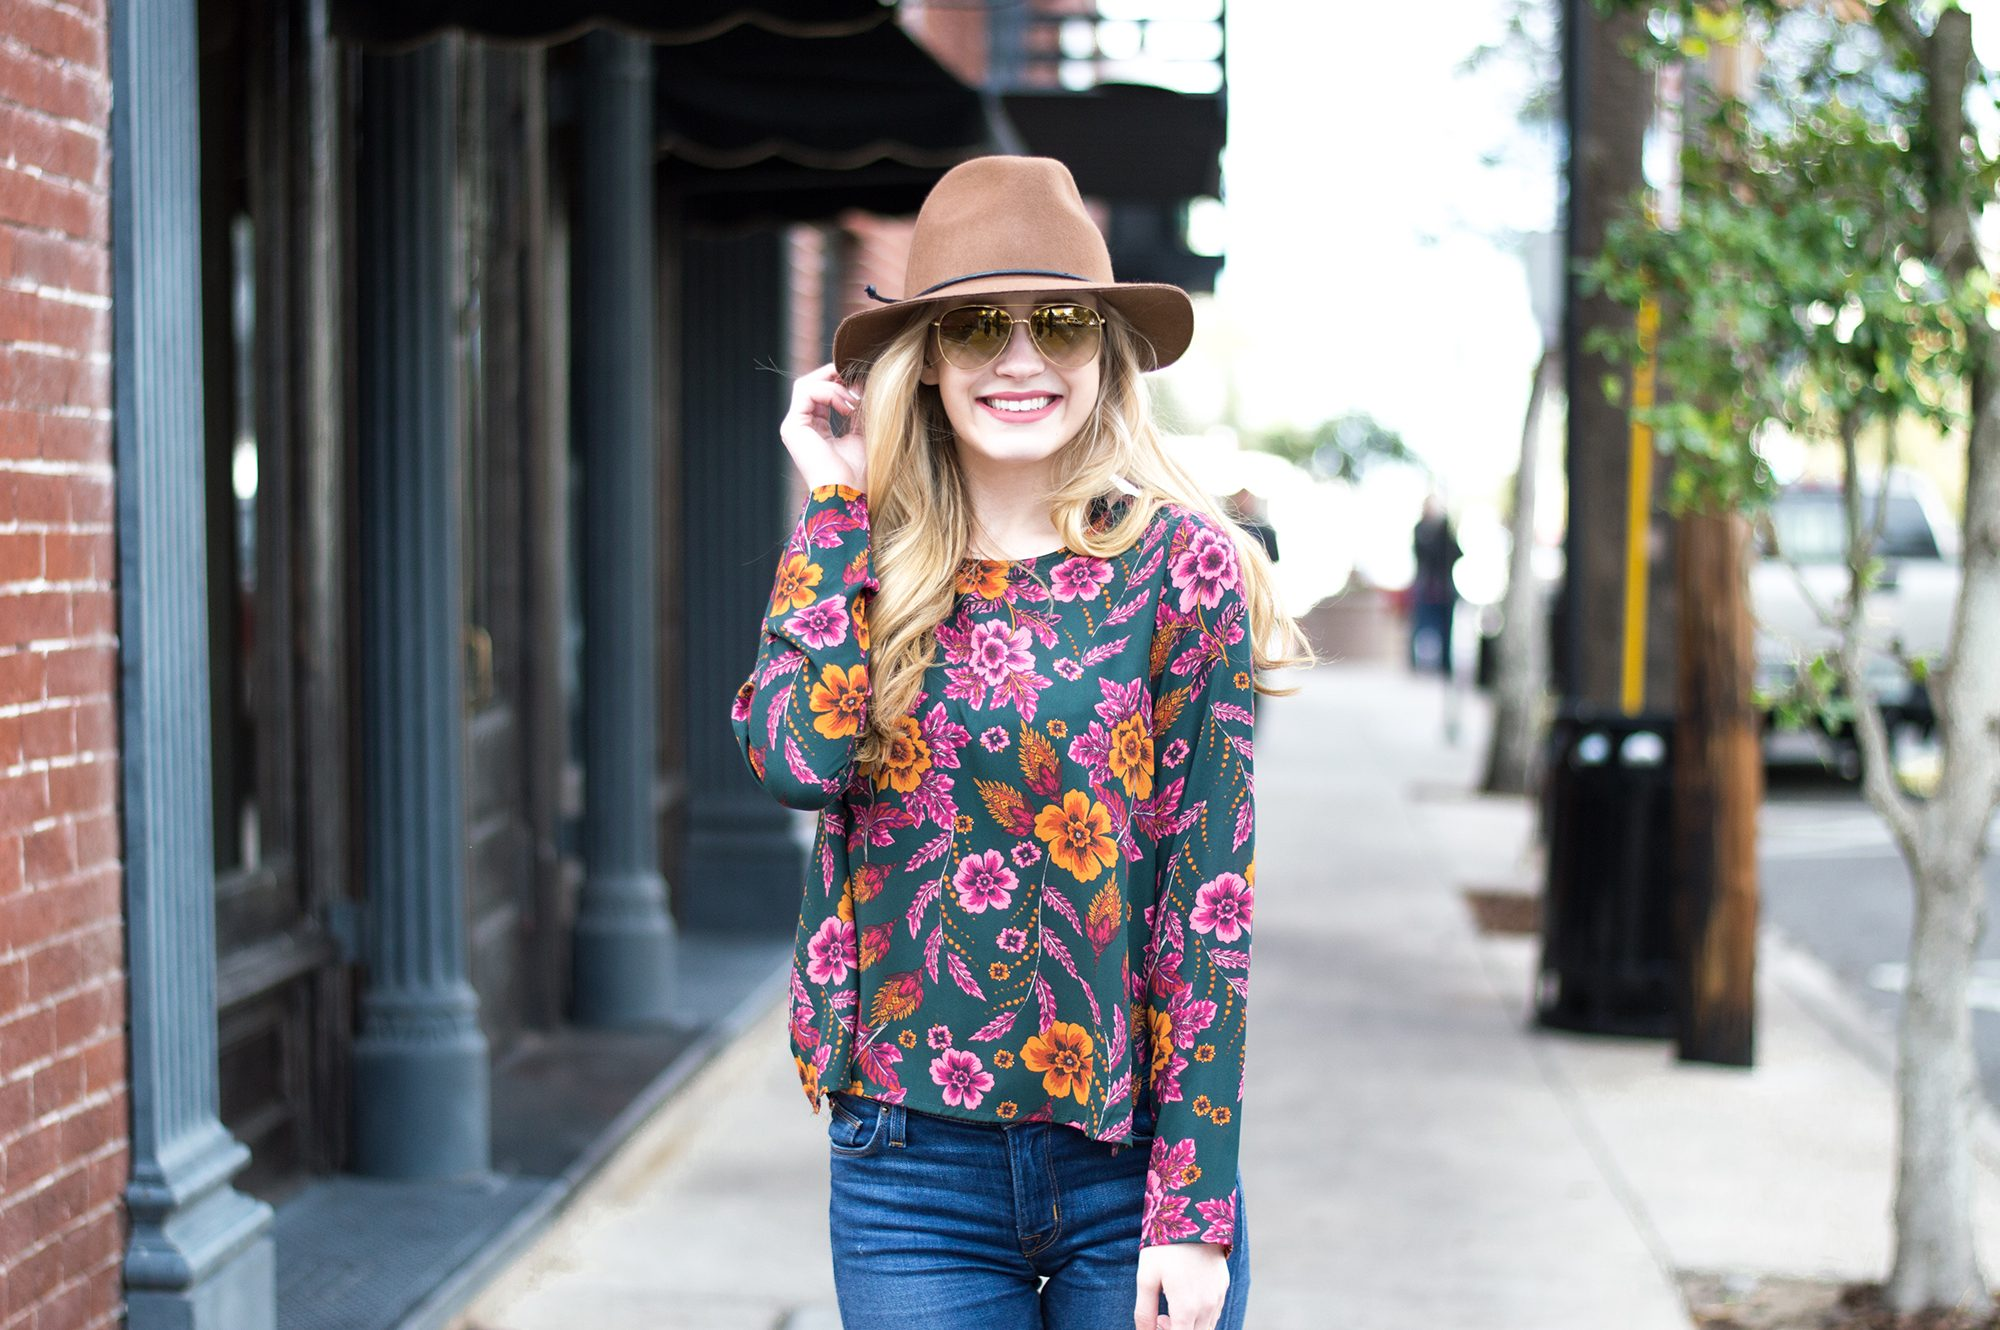 styelled-blog-fashion-lifestyle-brick-city-closet-hudson-jeans-denim-fblogger-style-blogger-ootd-outfit-burberry-central-florida-hats-fedora-floral-fall-01